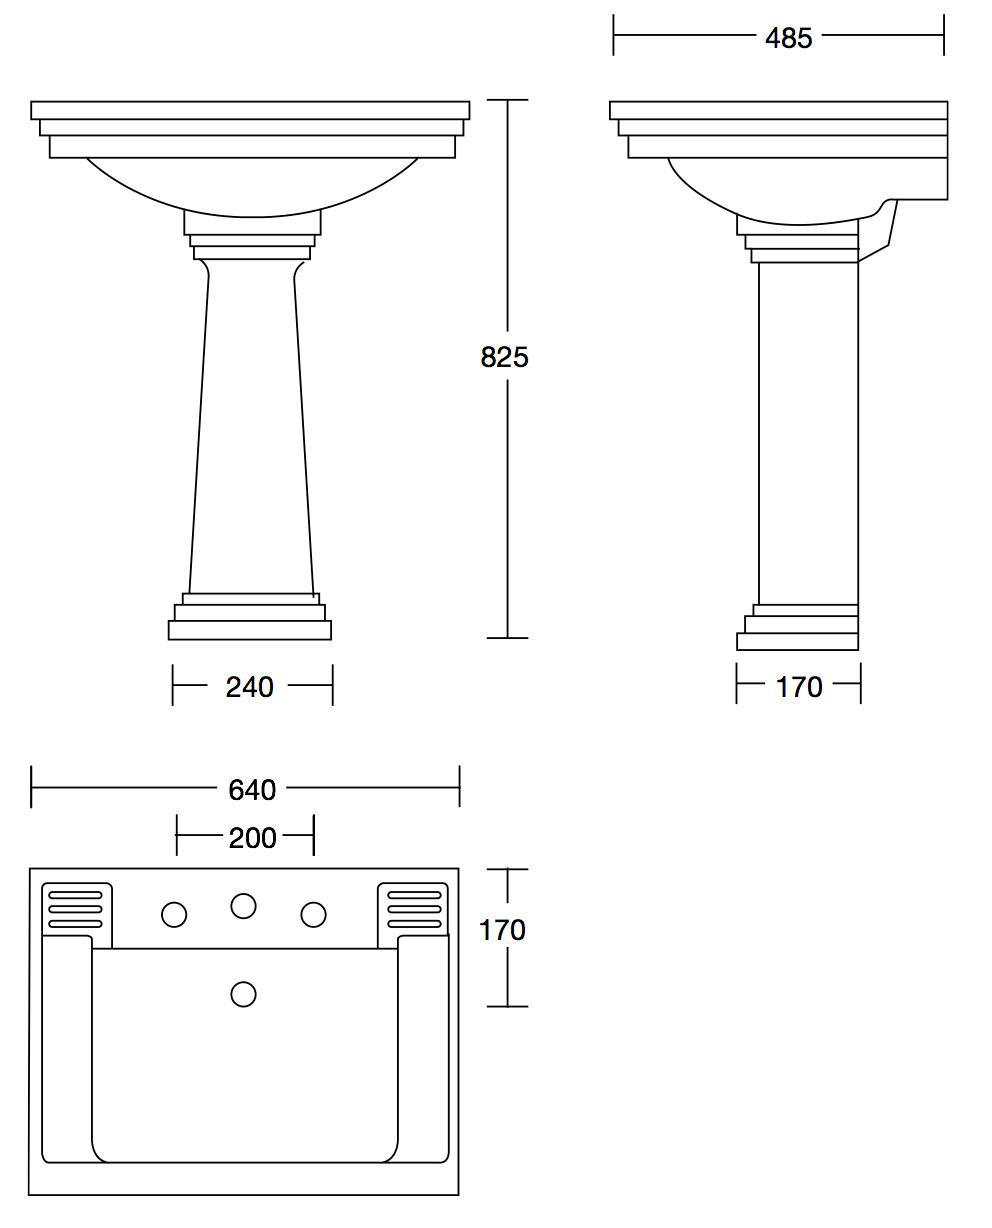 Scale drawing of: with pedestal, , available in white or black, , 3 tap holes or 1 tap hole, , width 640 mm, depth 485 mm, height 825 mm